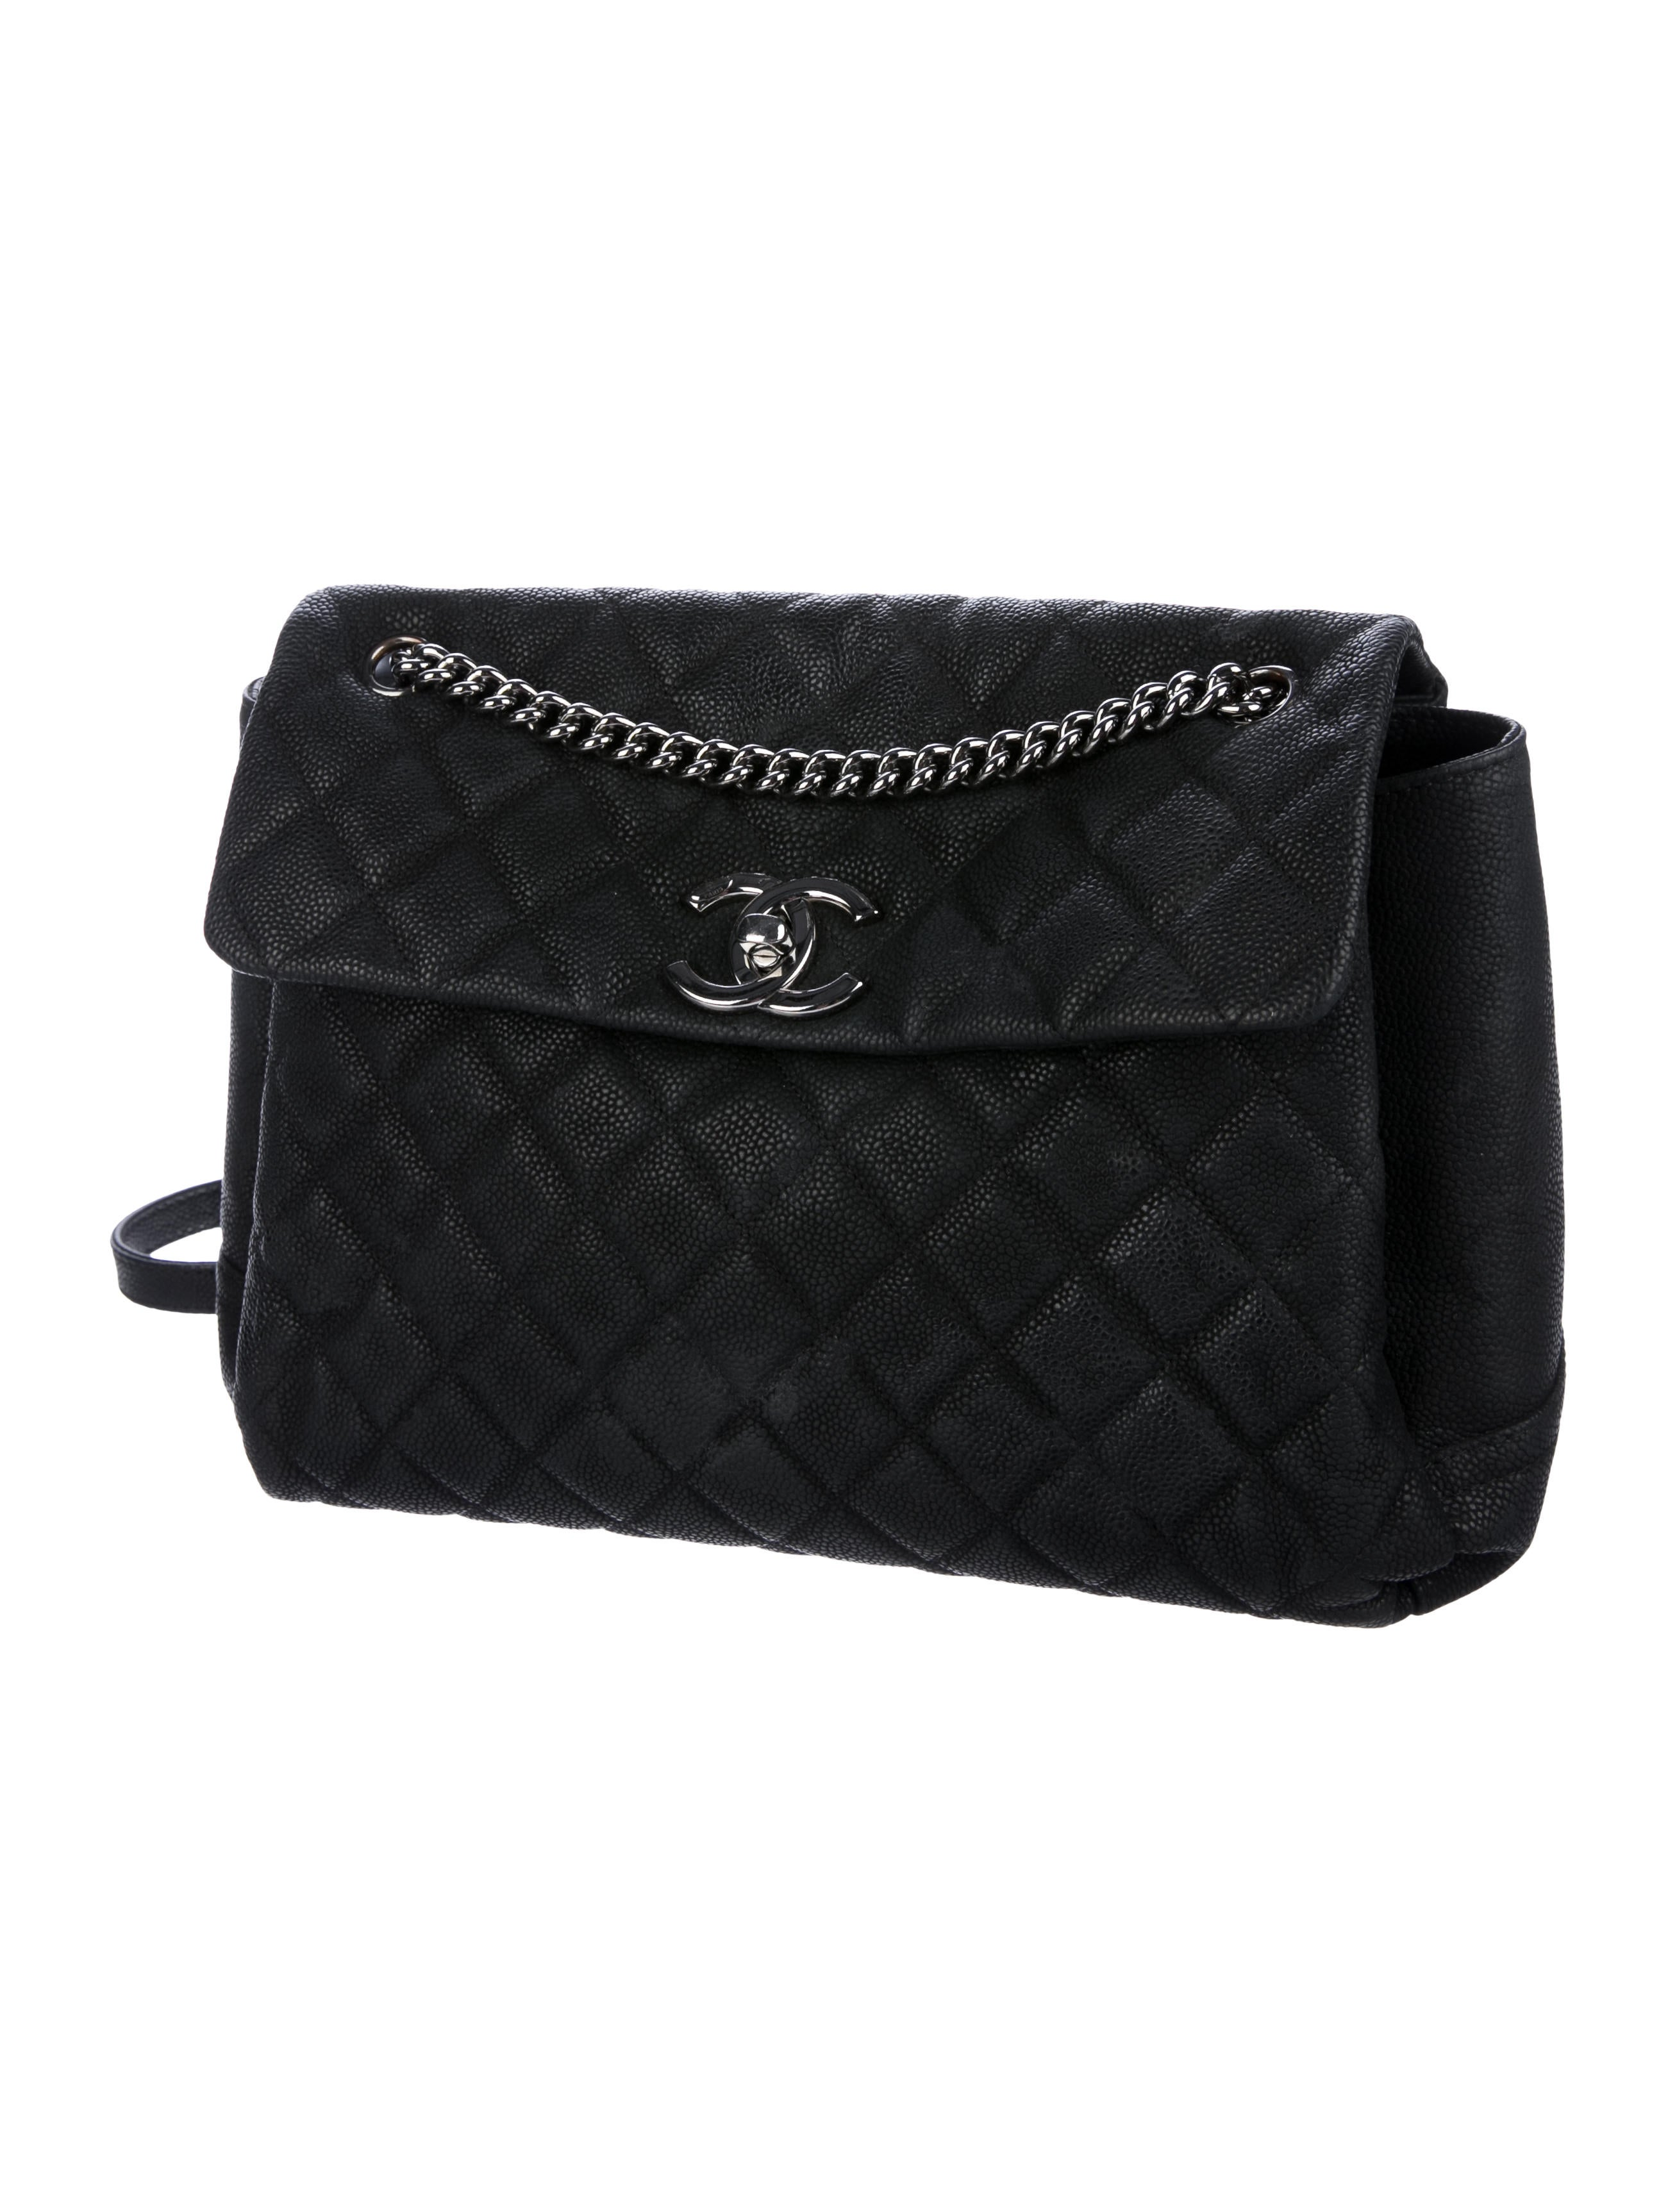 chanel lady pearly flap bag - handbags - cha240523 | the realreal